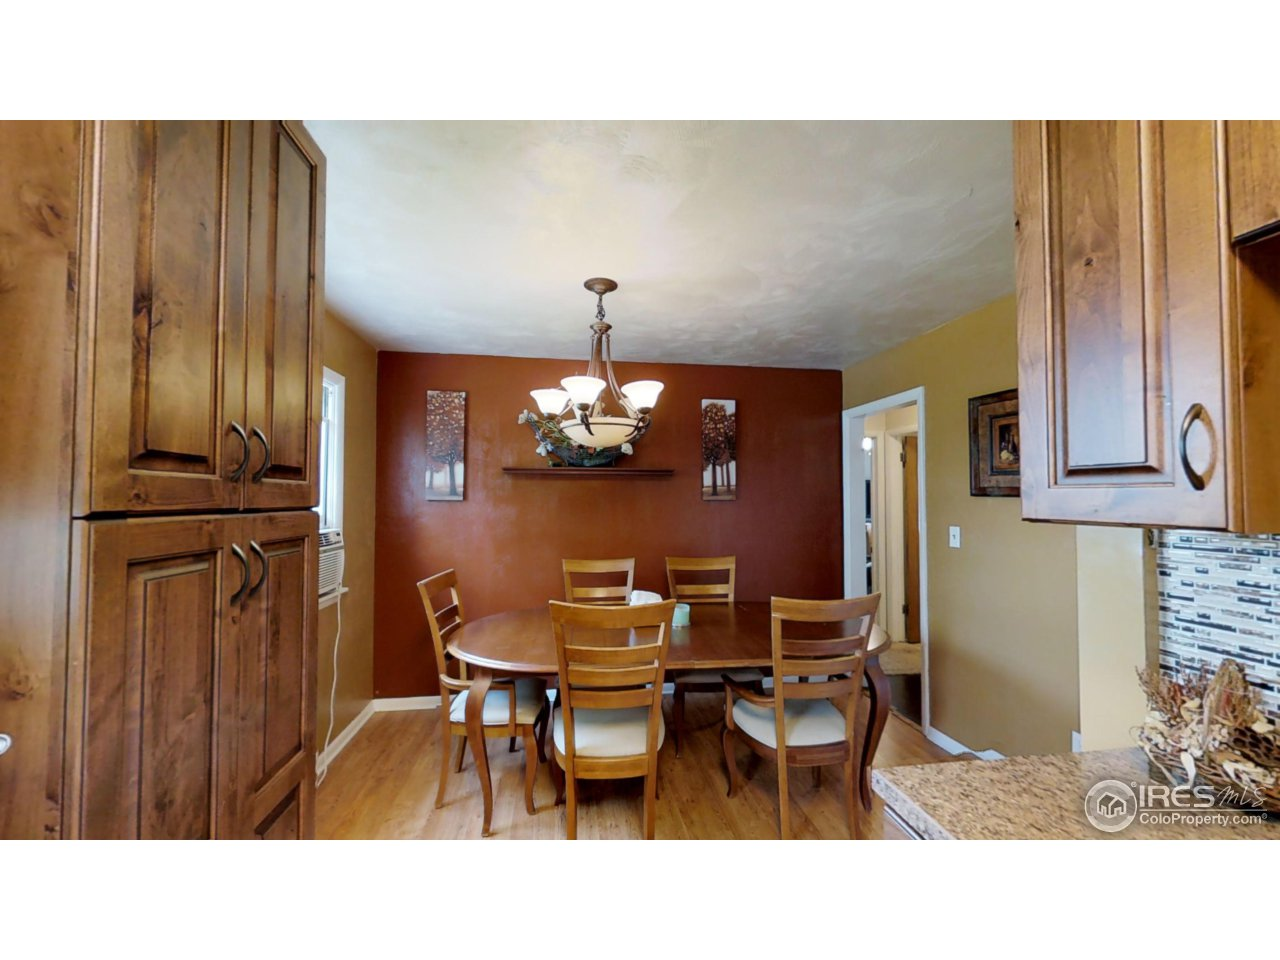 500 27th Ave, Greeley, CO 80634